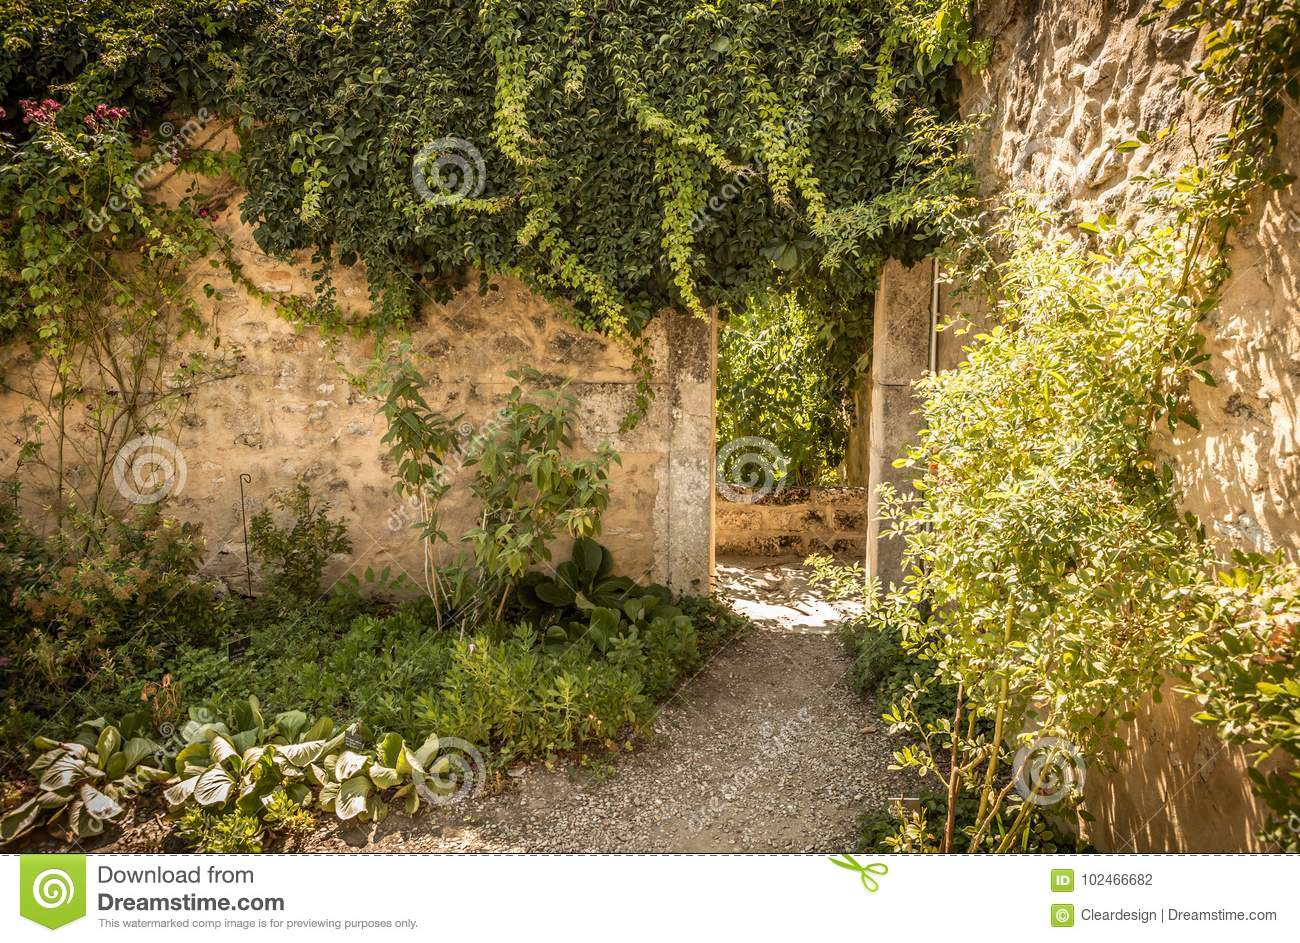 Archway Gate And Historic Stone Wall In The Garden Nook Stock Photo ...